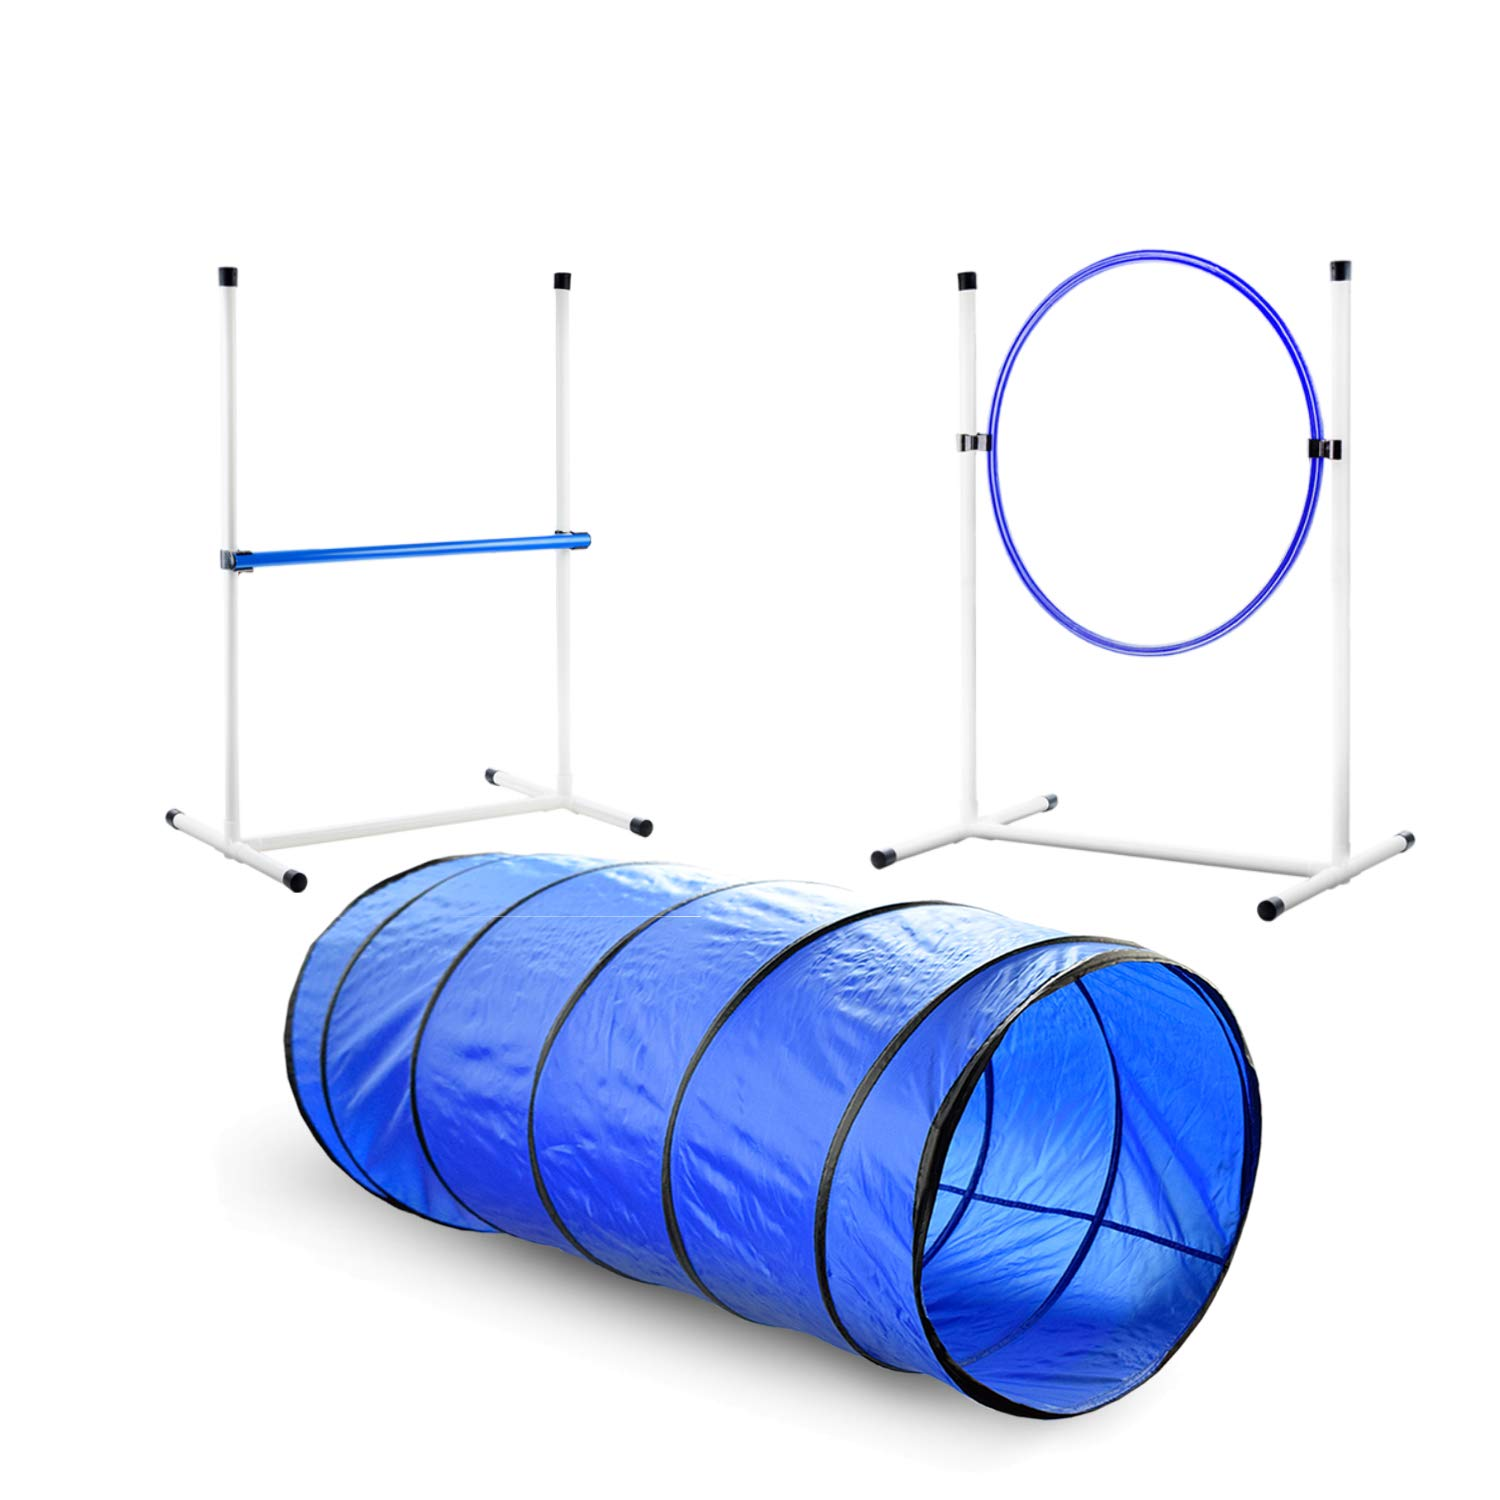 Better Sporting Dogs 3 Piece Essential Dog Agility Equipment Set | Agility Jump | Tire Jump | Tunnel by Better Sporting Dogs